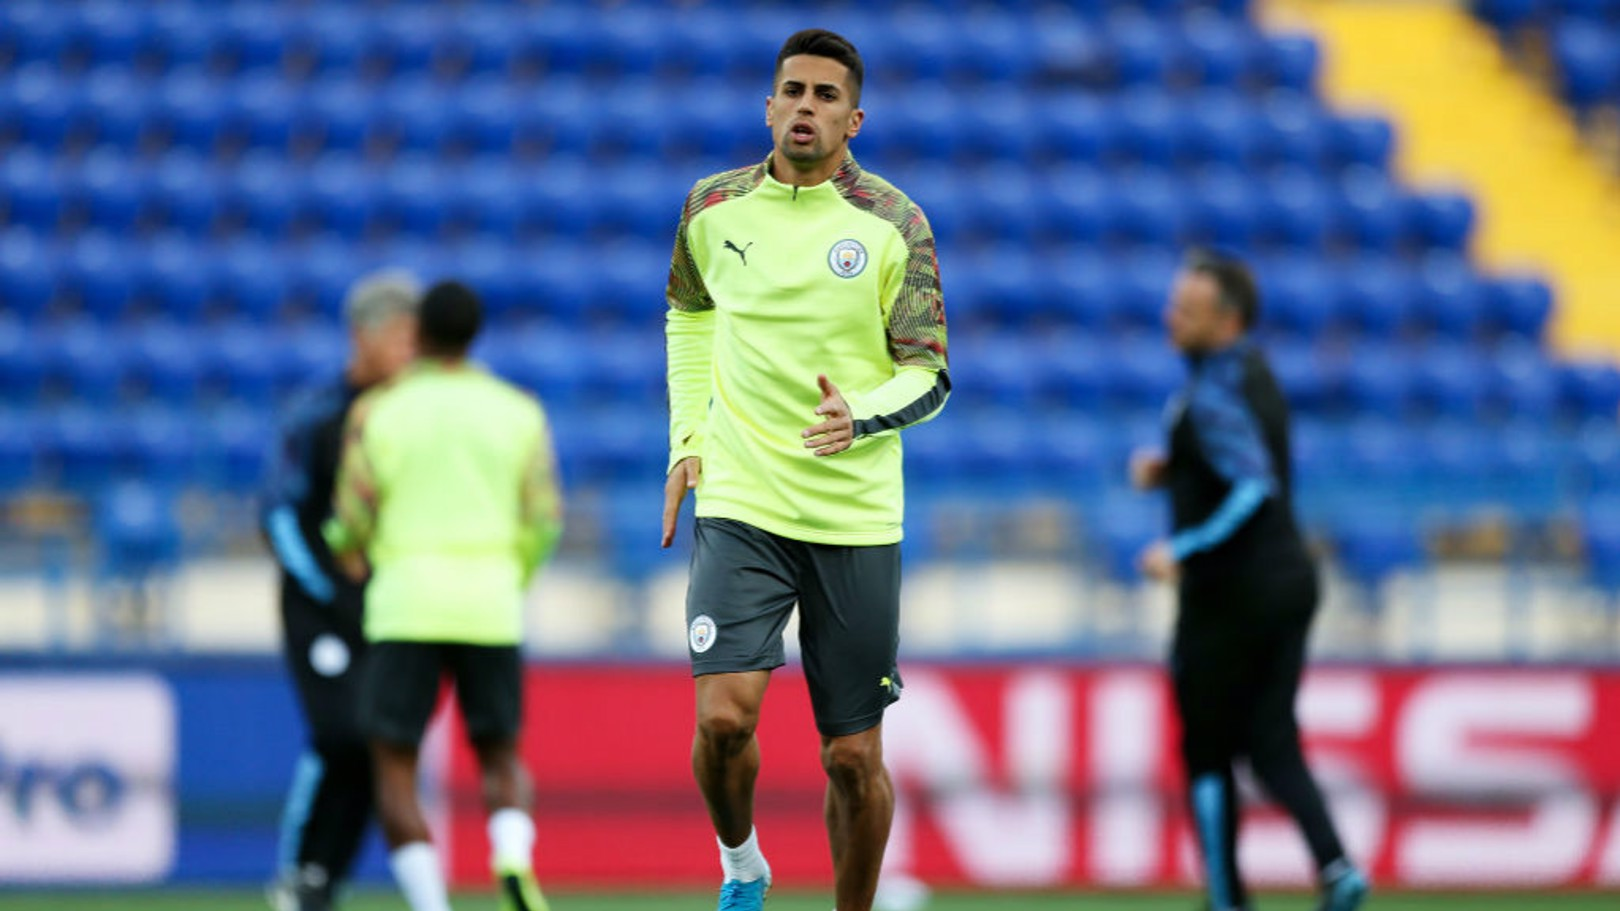 MOVING ON UP: Joao Cancelo.